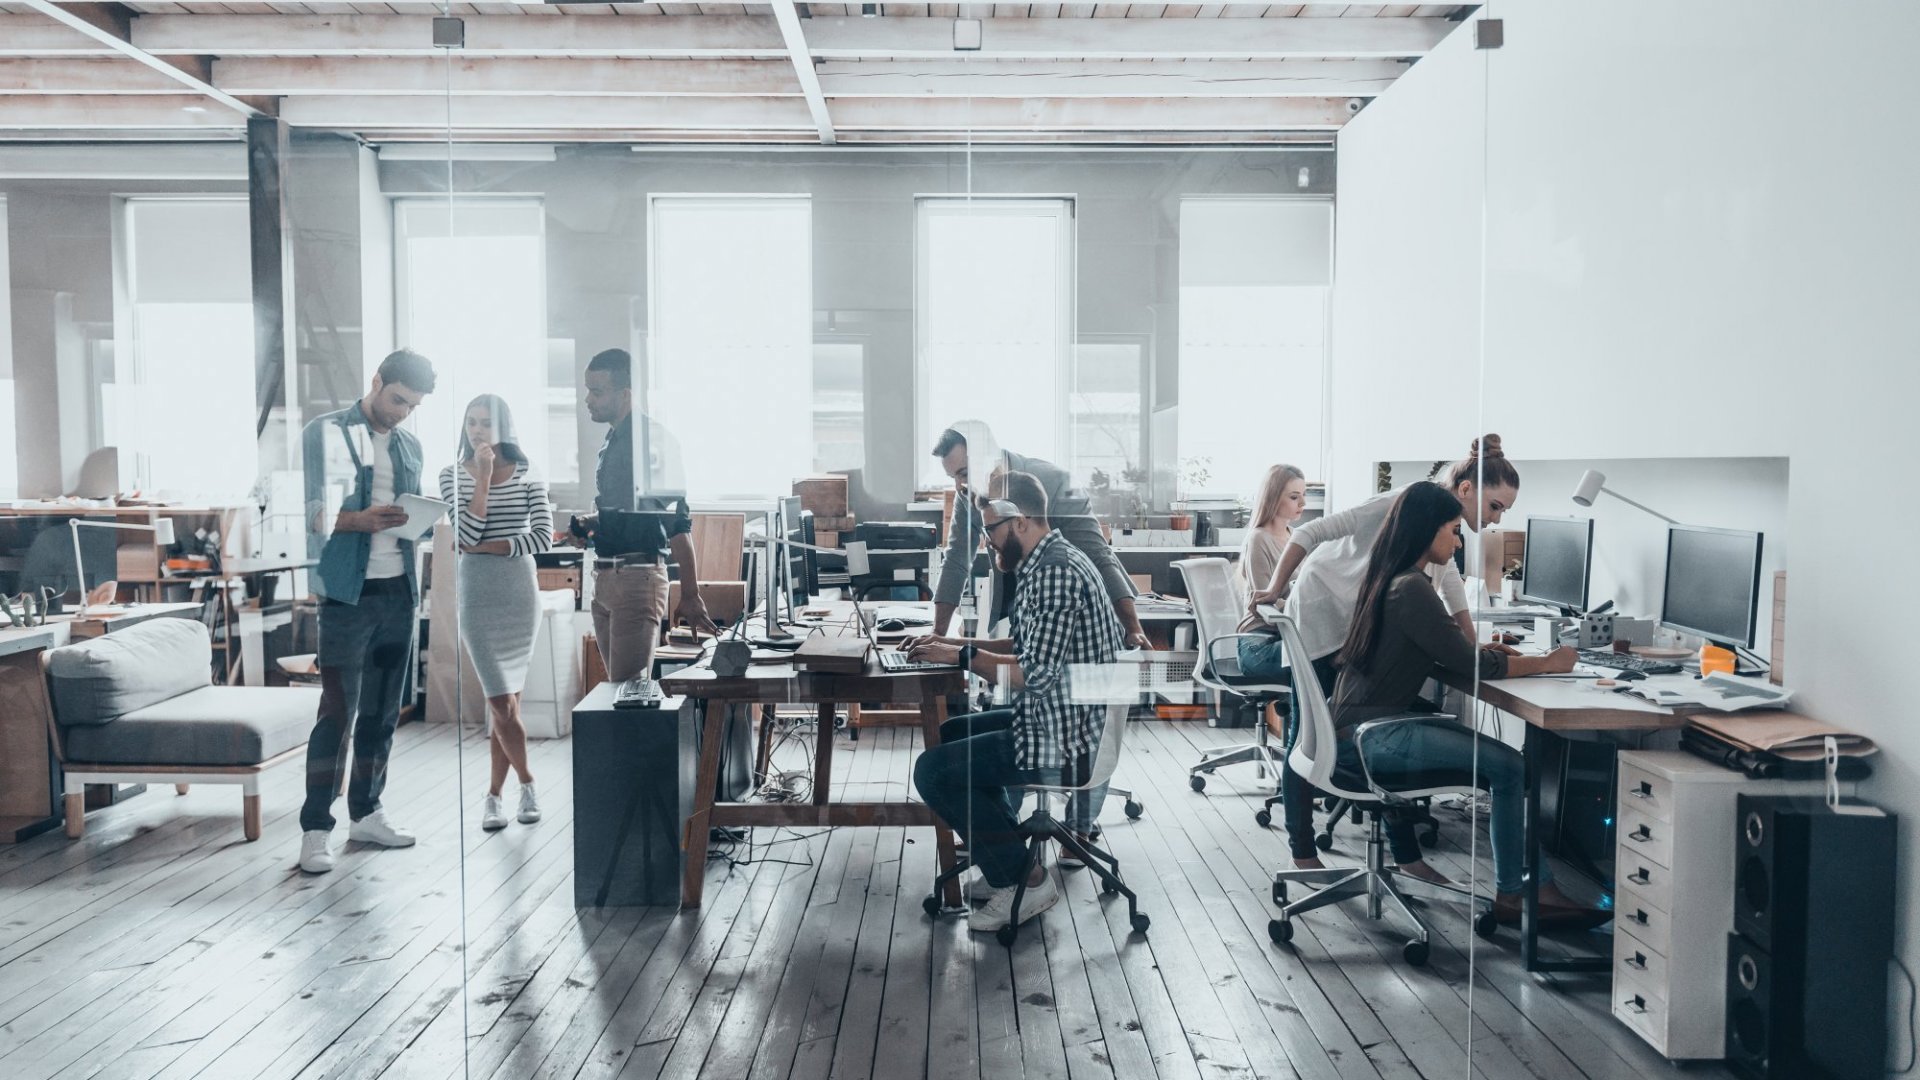 OK, Open-Plan Offices Kill Collaboration, But at Least They Keep You From Sitting All Day